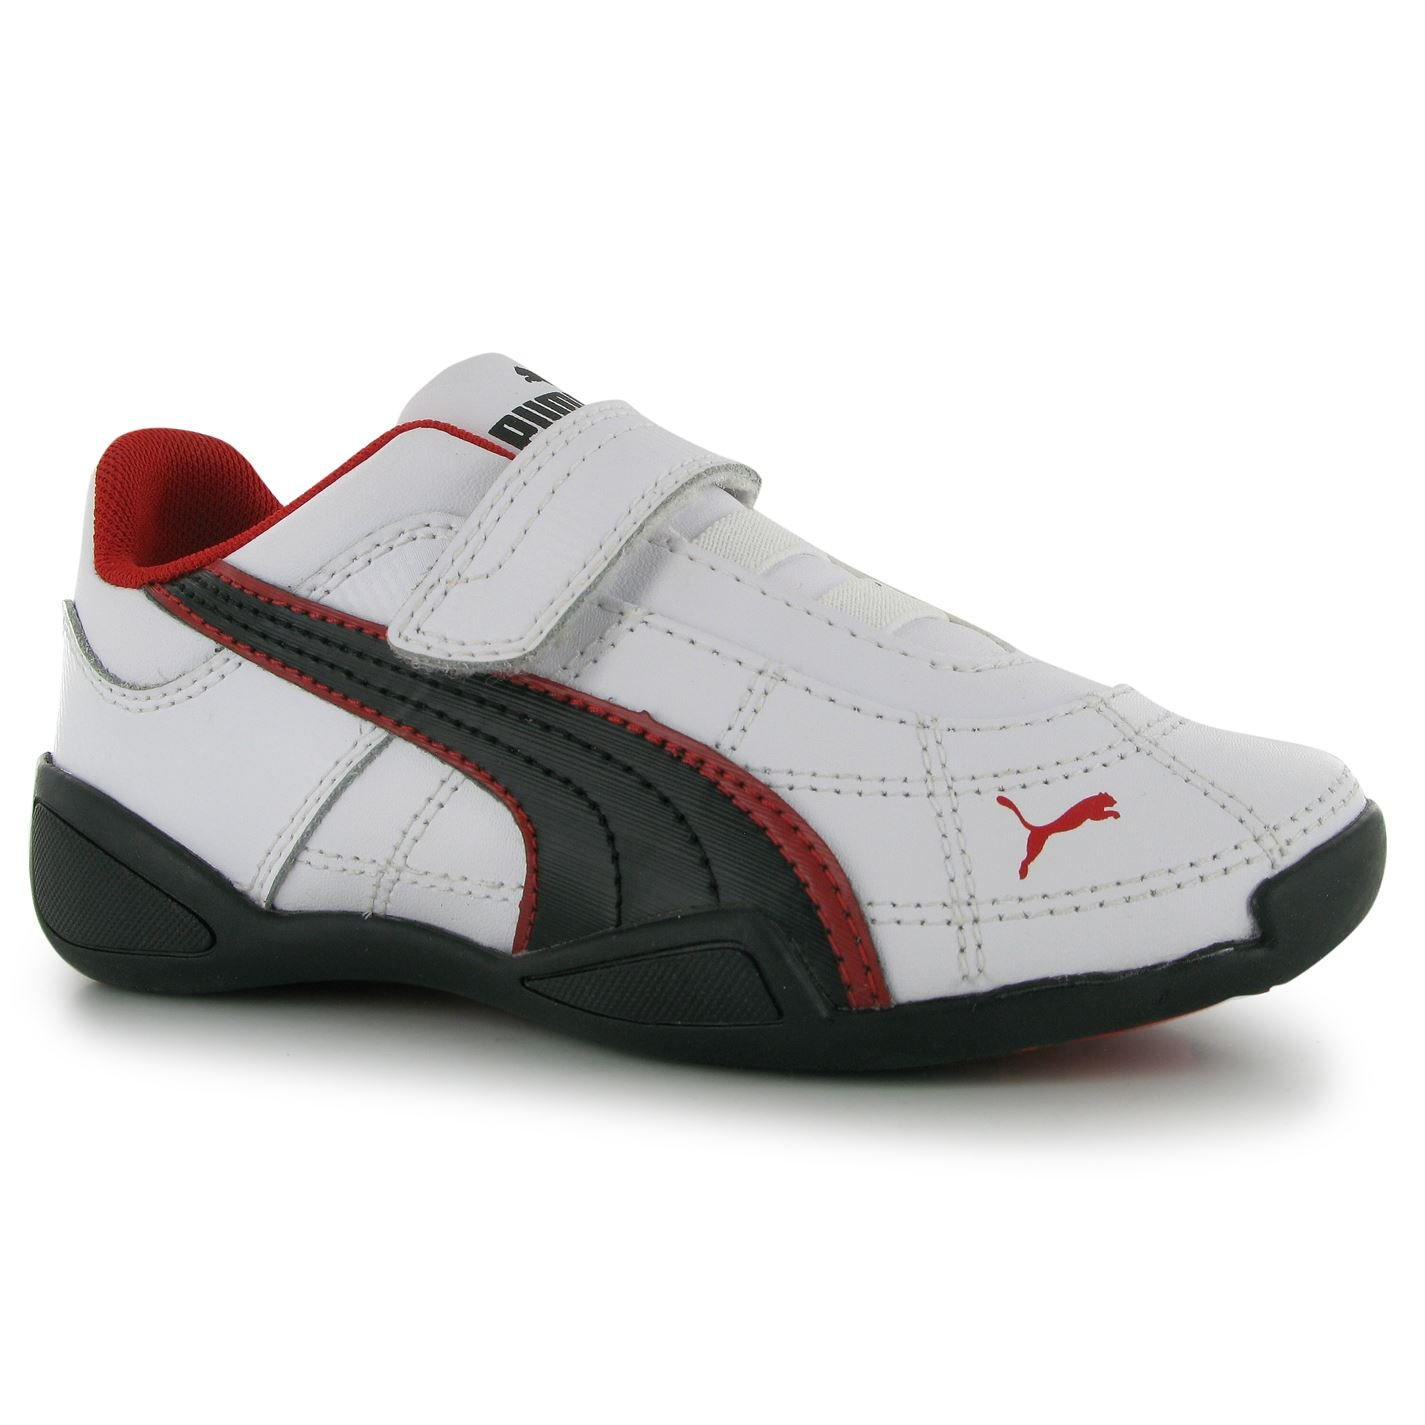 Puma Kids Tune Cat Childs Trainers White Black Red C10  Amazon.co.uk  Shoes    Bags d8e1e8773